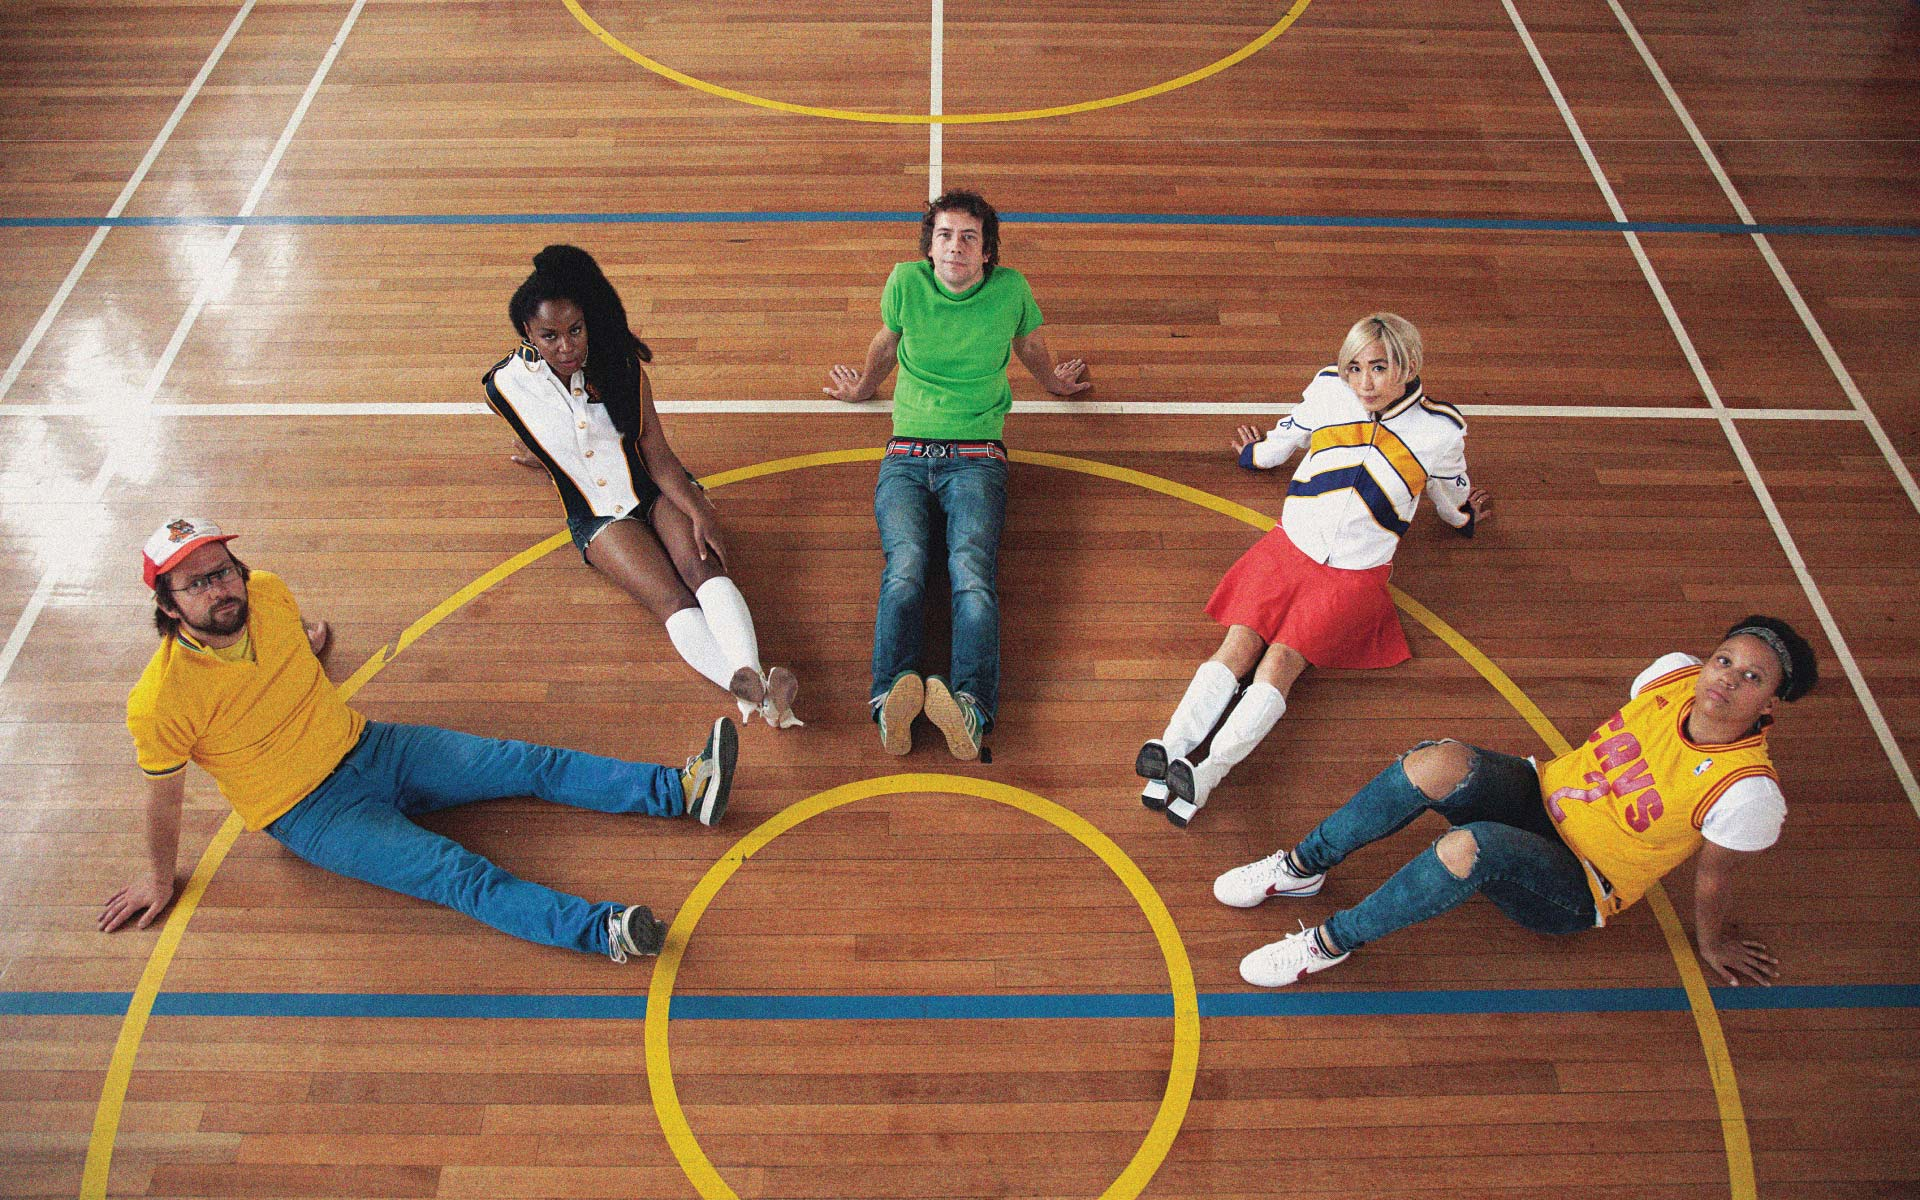 The Go! Team are pictured, sitting in a circle on a basketball court.